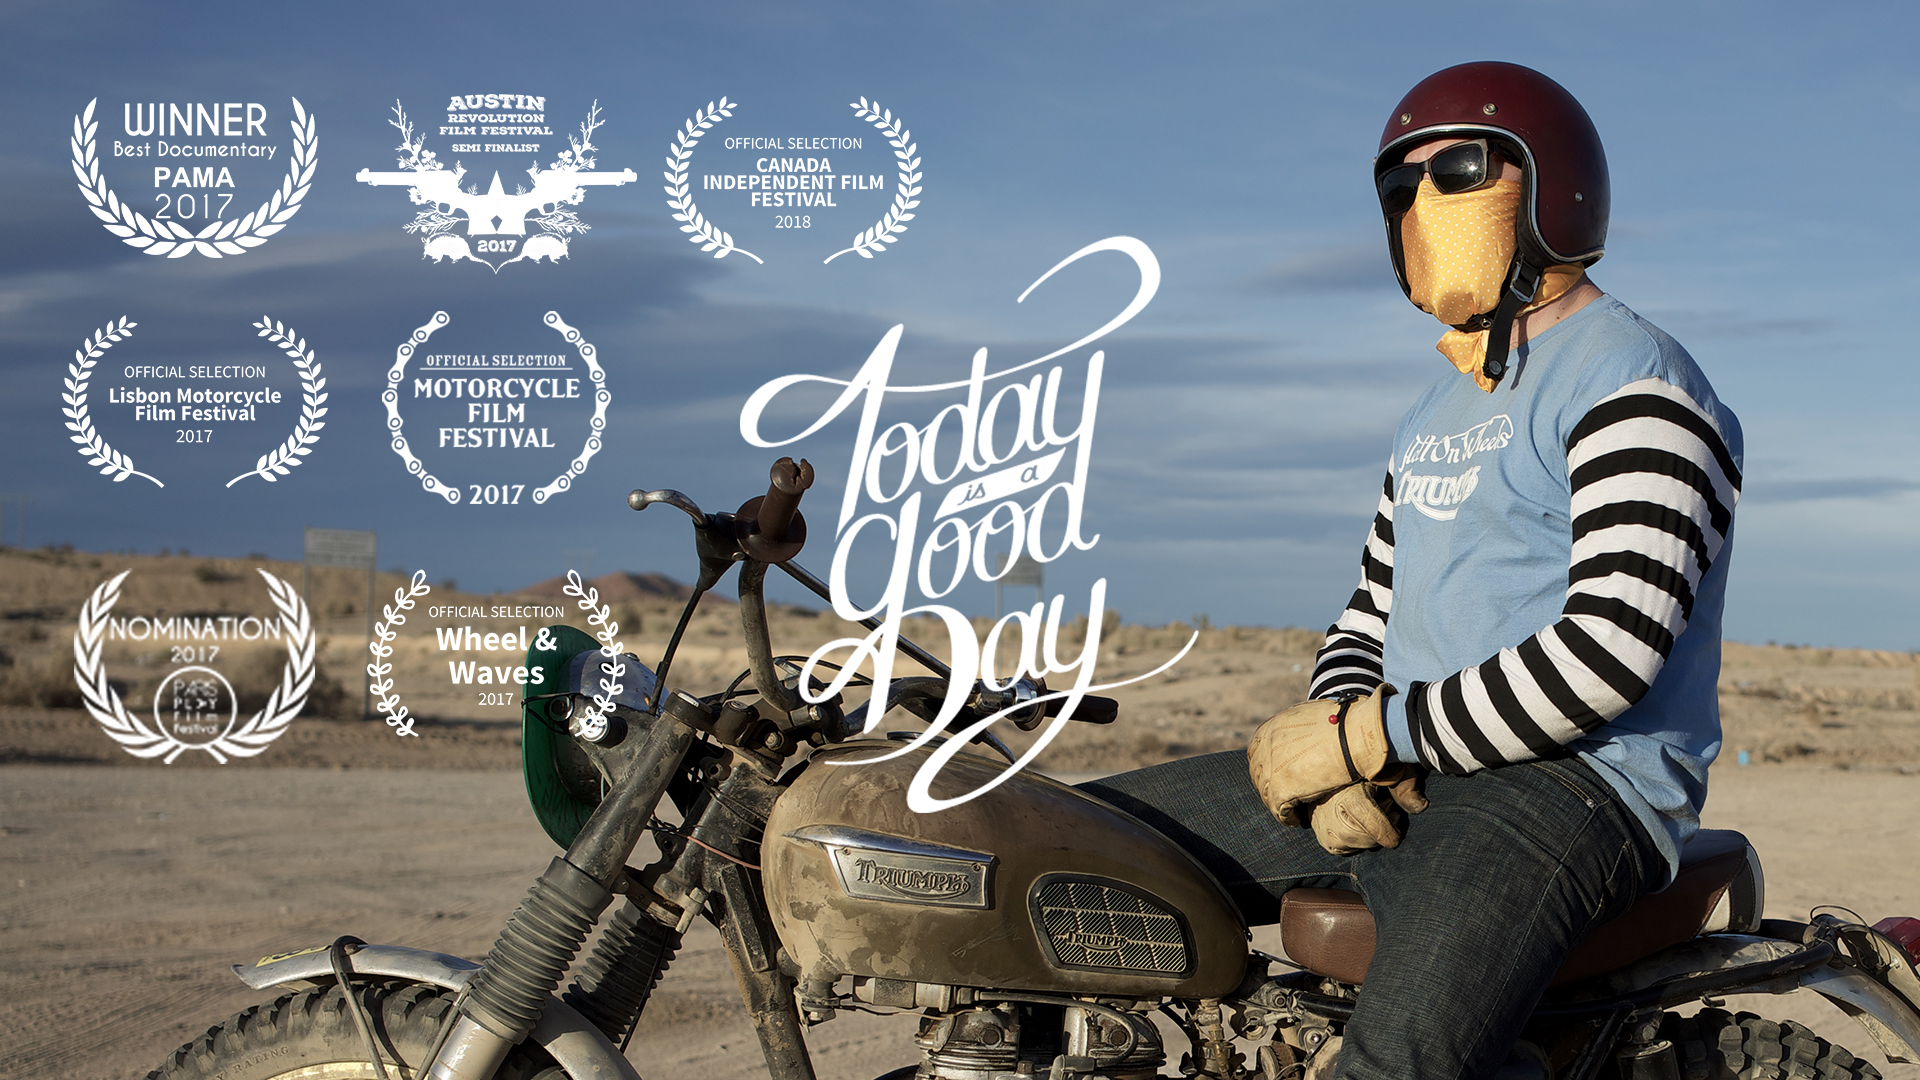 TODAY IS A GOOD DAY - DOCUMENTARY 52'